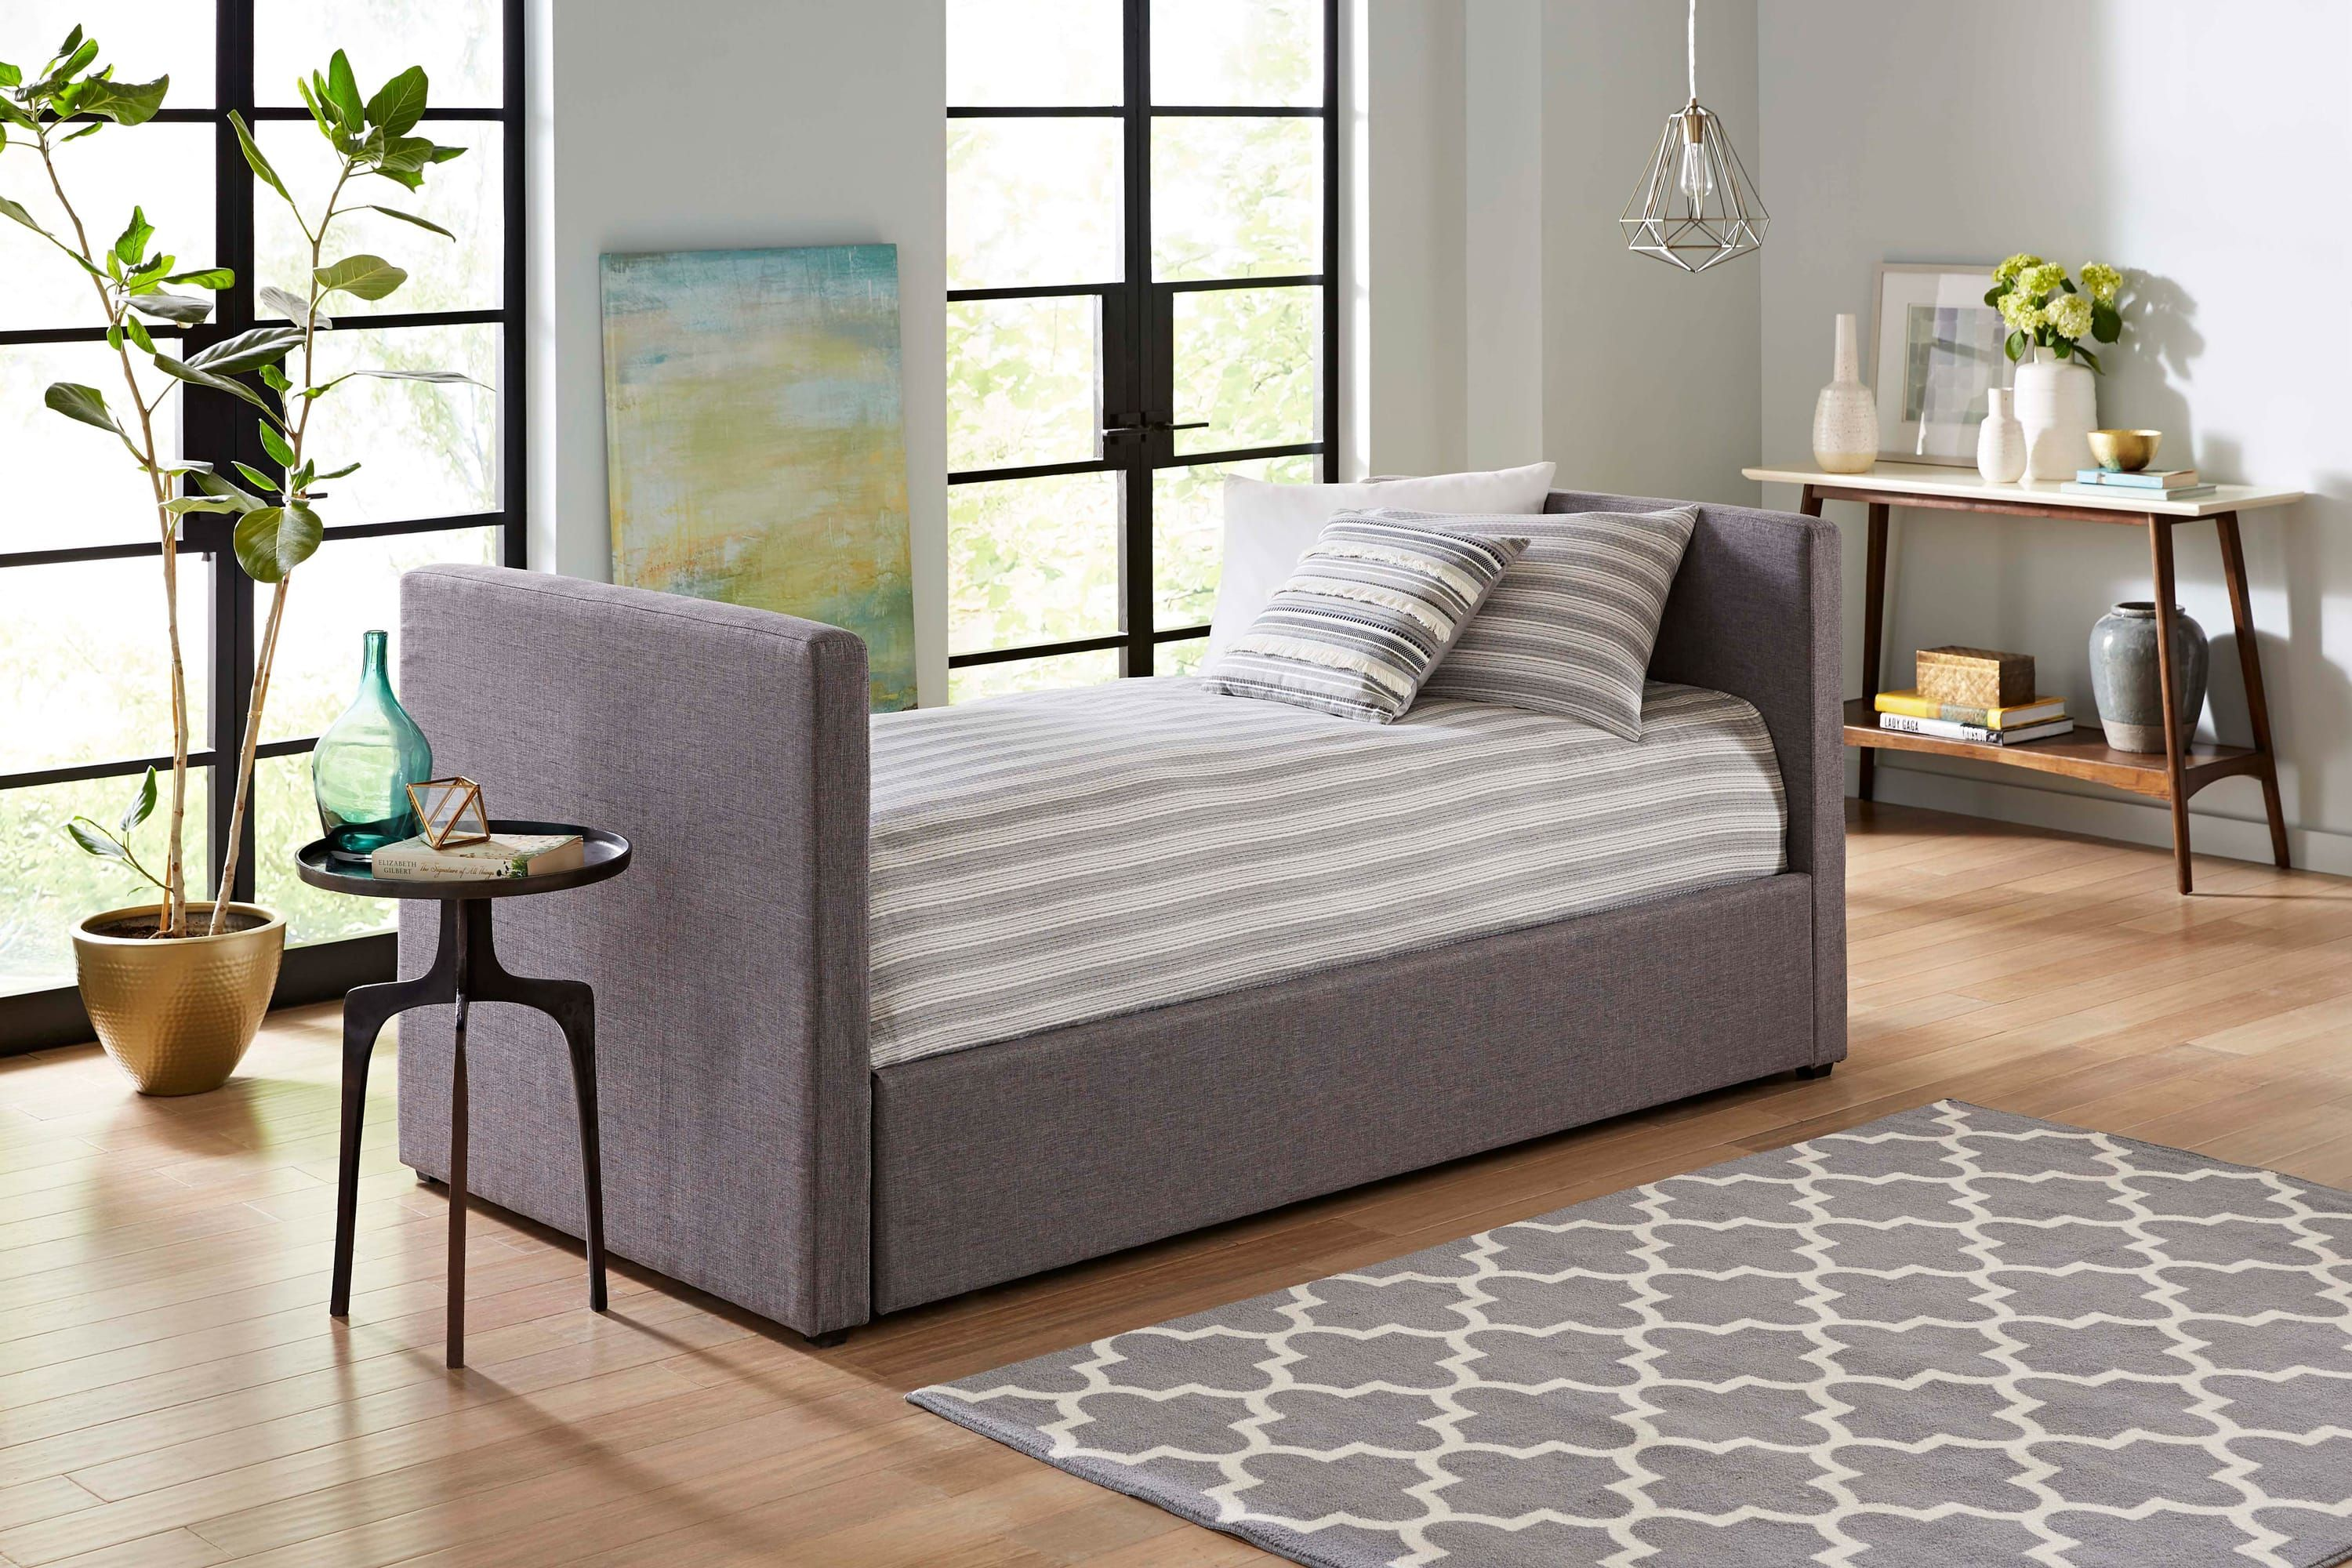 Balboa Daybed From Fashion Bed Group Fashion Bed Group Leggett